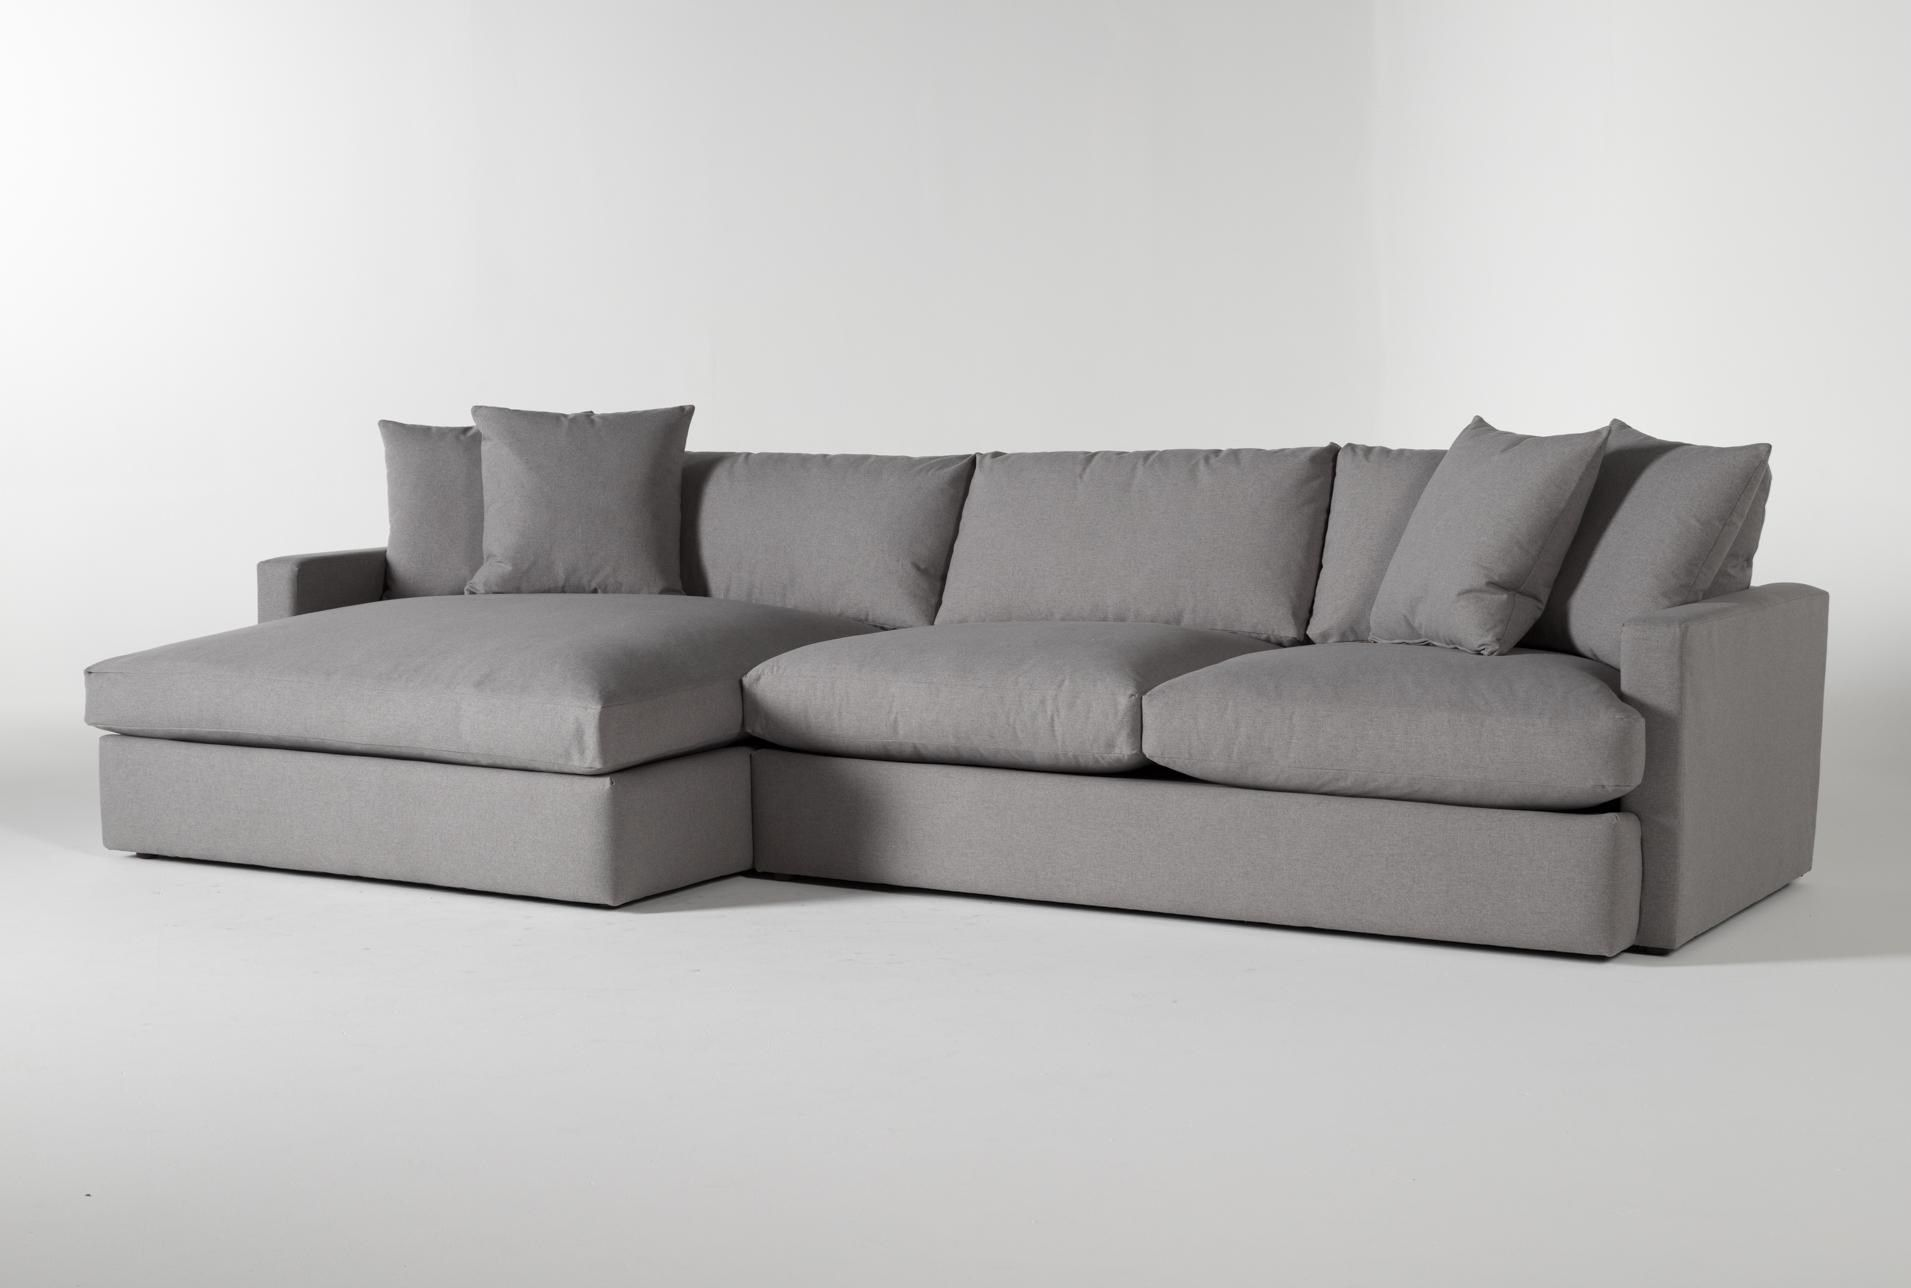 Grand Down 2 Piece Sectional With Left Arm Facing Oversized Chaise In 2020 Sectional Sectional Sofa With Chaise Oversized Sectional Sofa